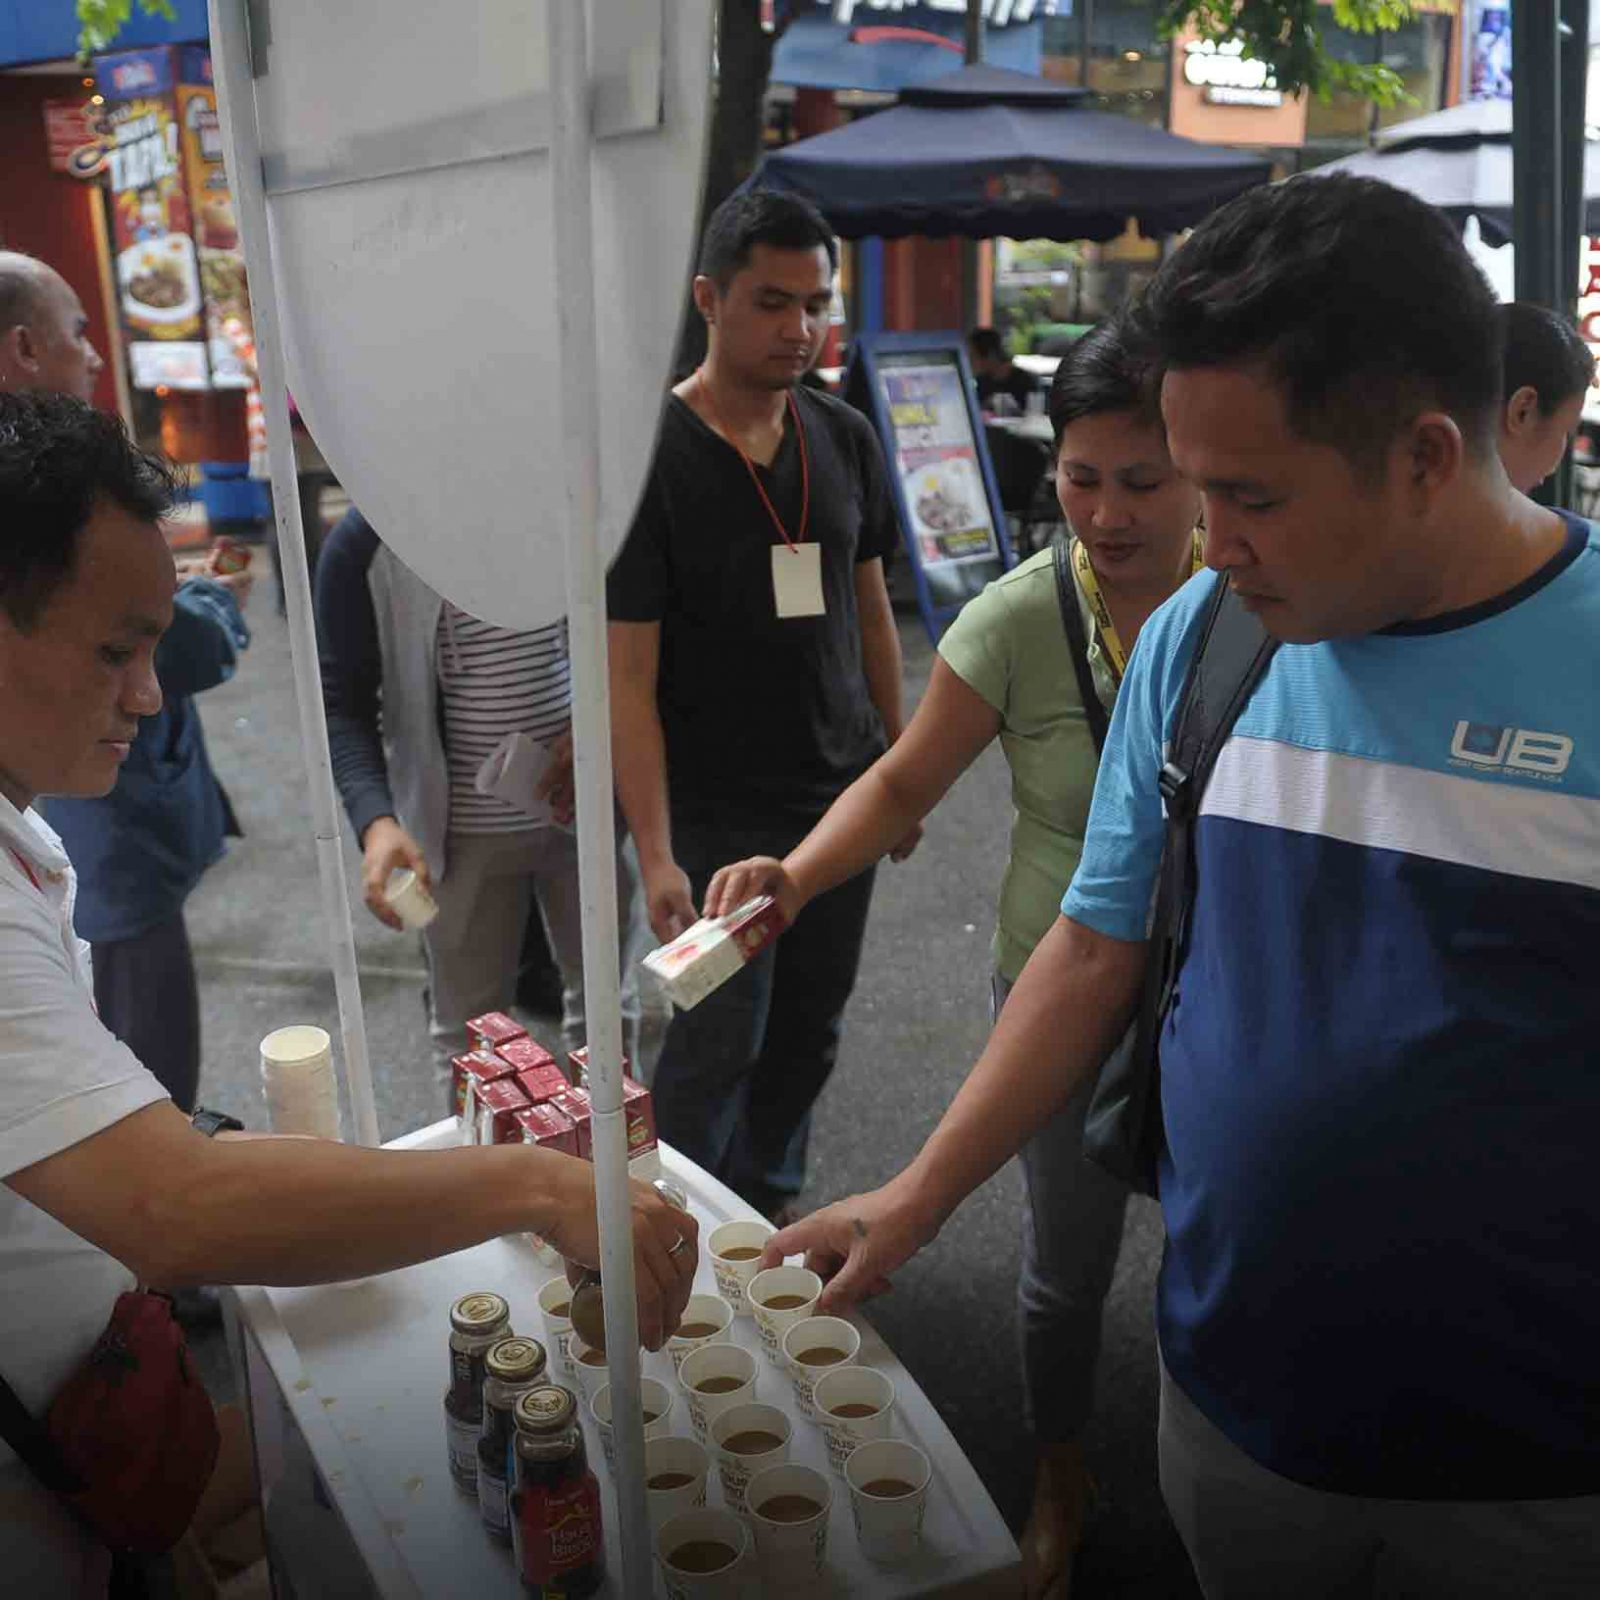 Wishers not only enjoyed great music but great refreshments and treats as well from Wish 107.5's generous sponsors.   (Photo courtesy of Photoville International)